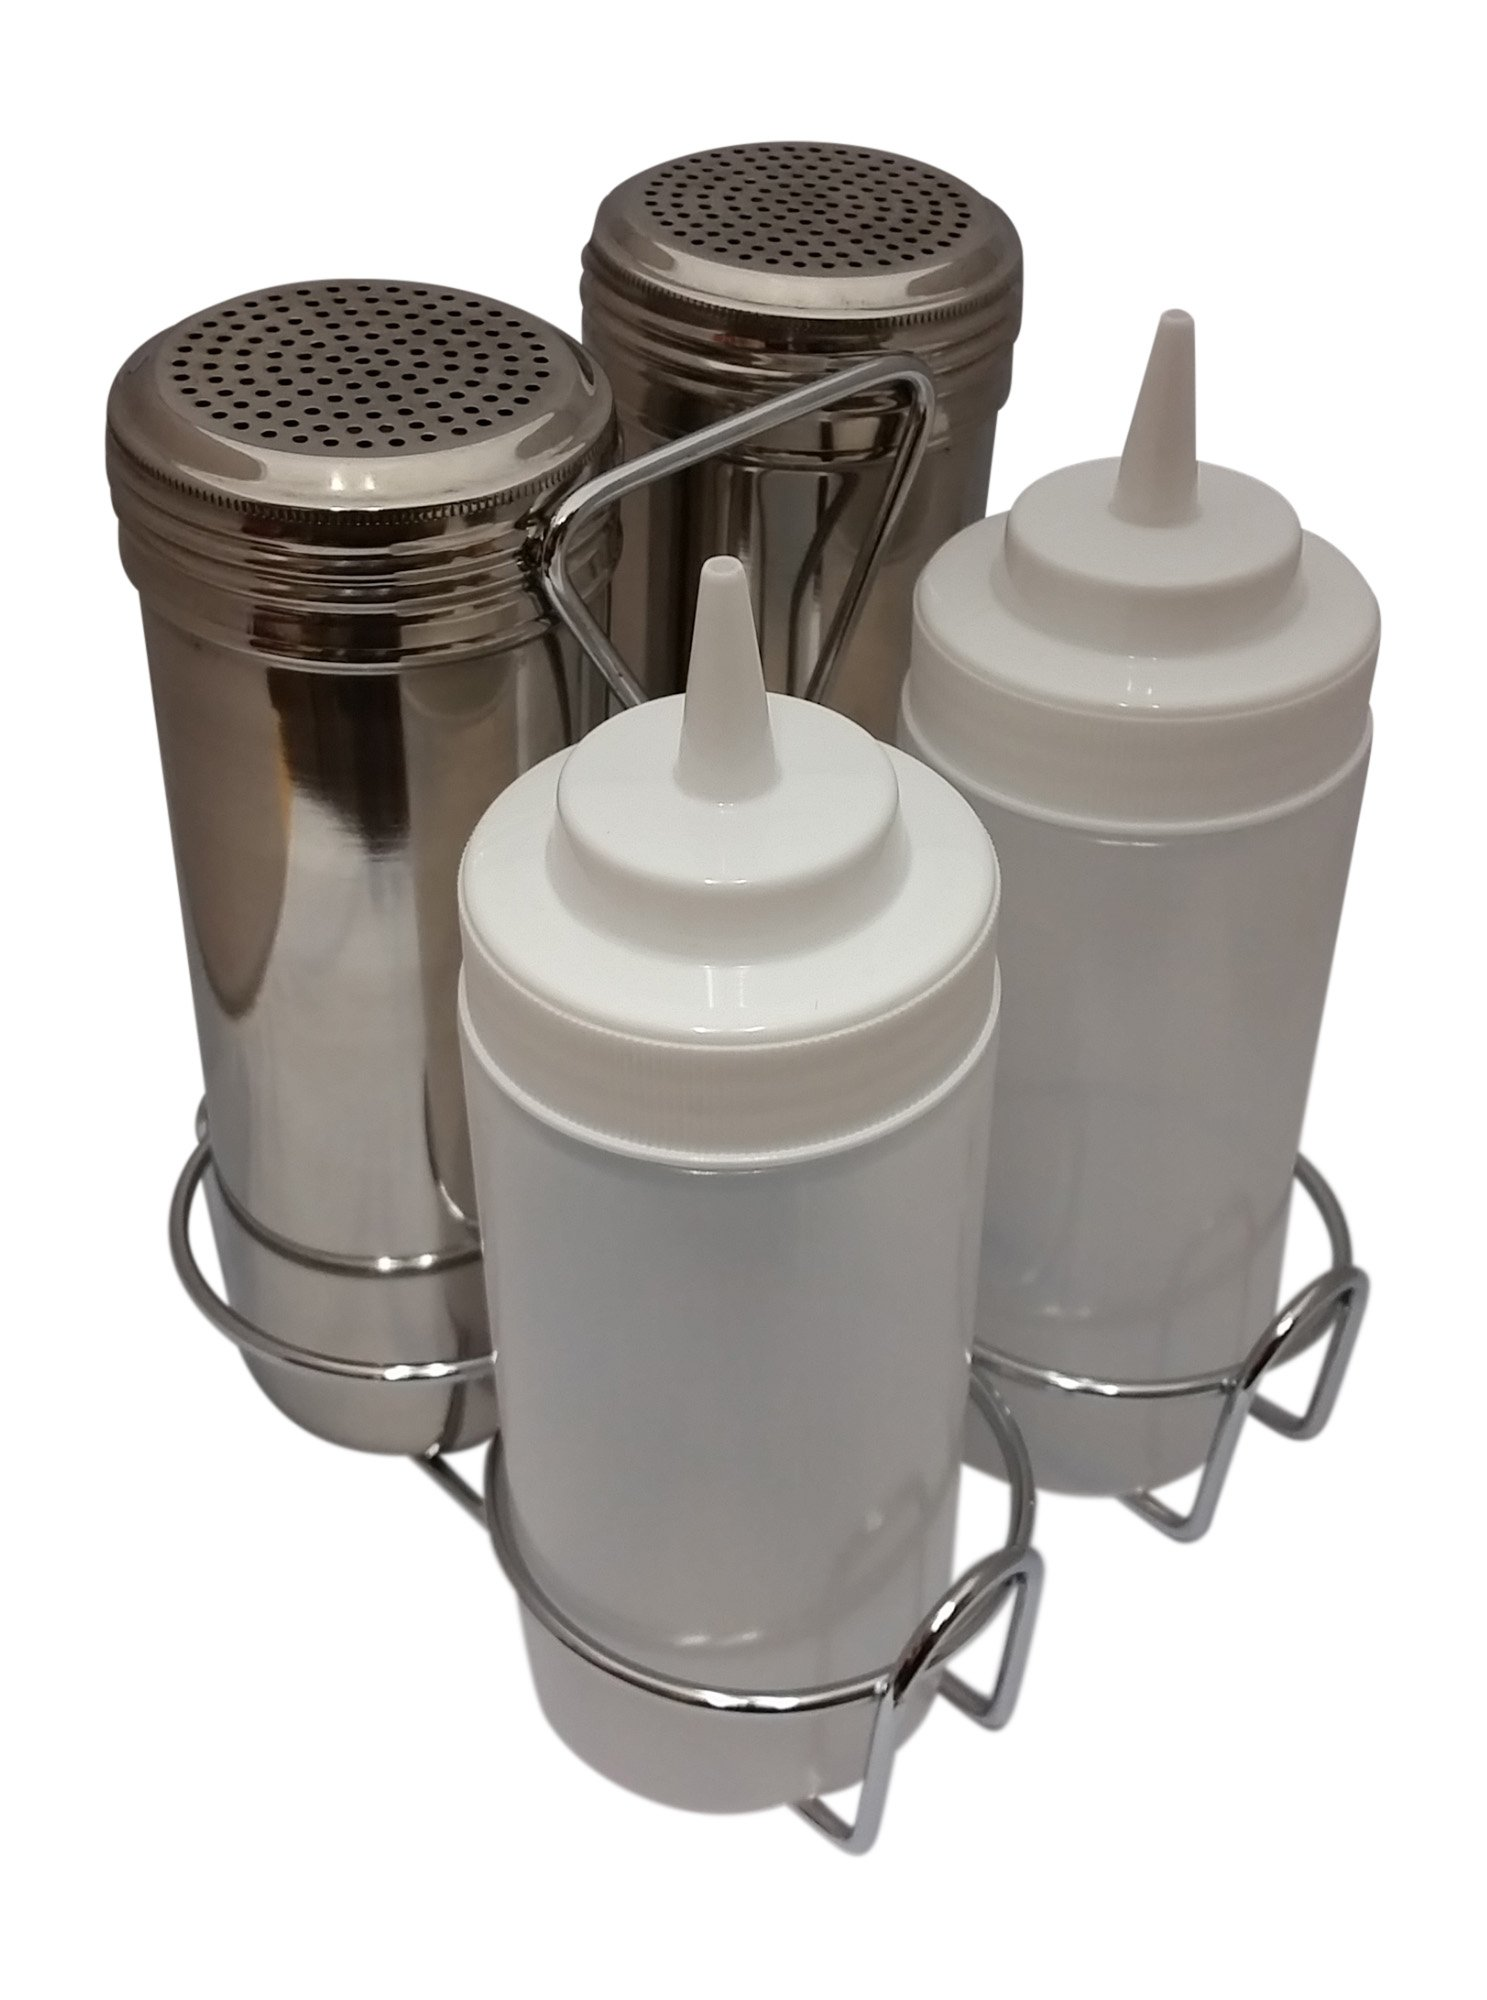 Griddle Sauce Bottle and Seasoning Shaker Set with Caddy